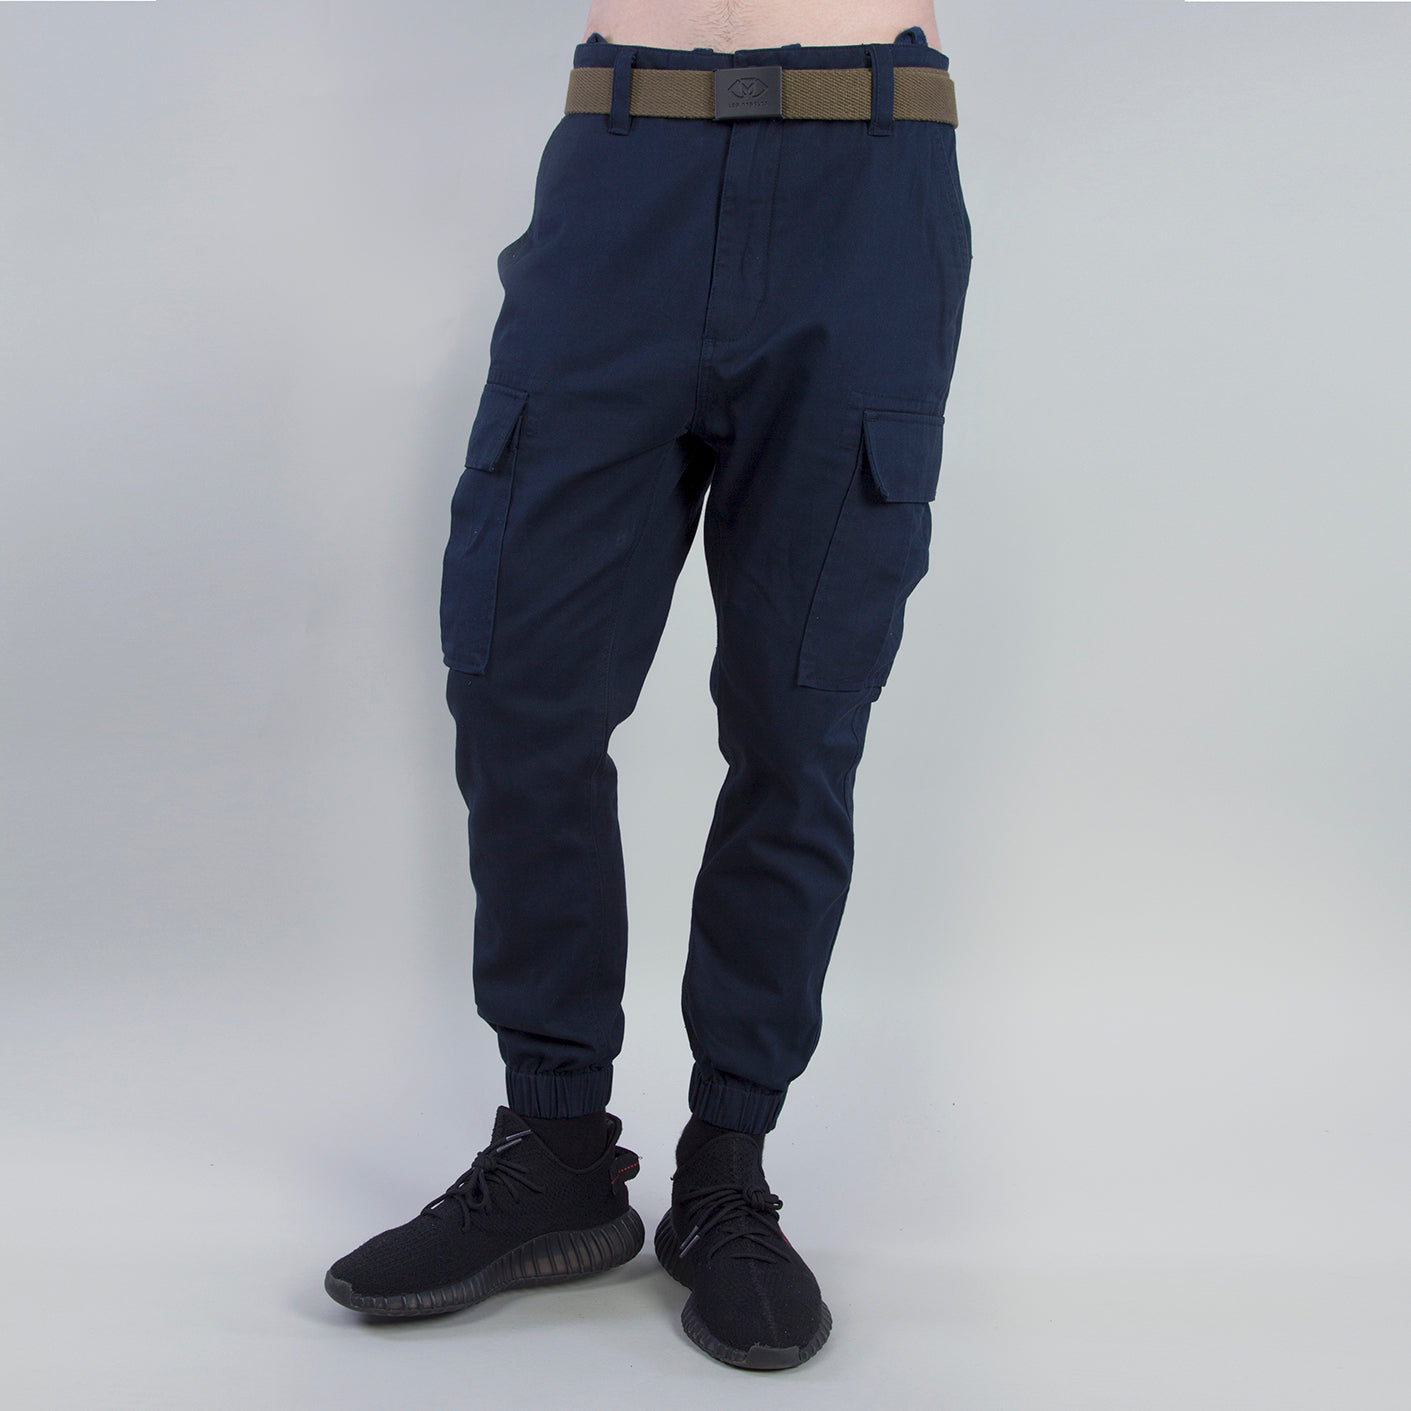 WOVEN ARMY JOGGERS - NAVY